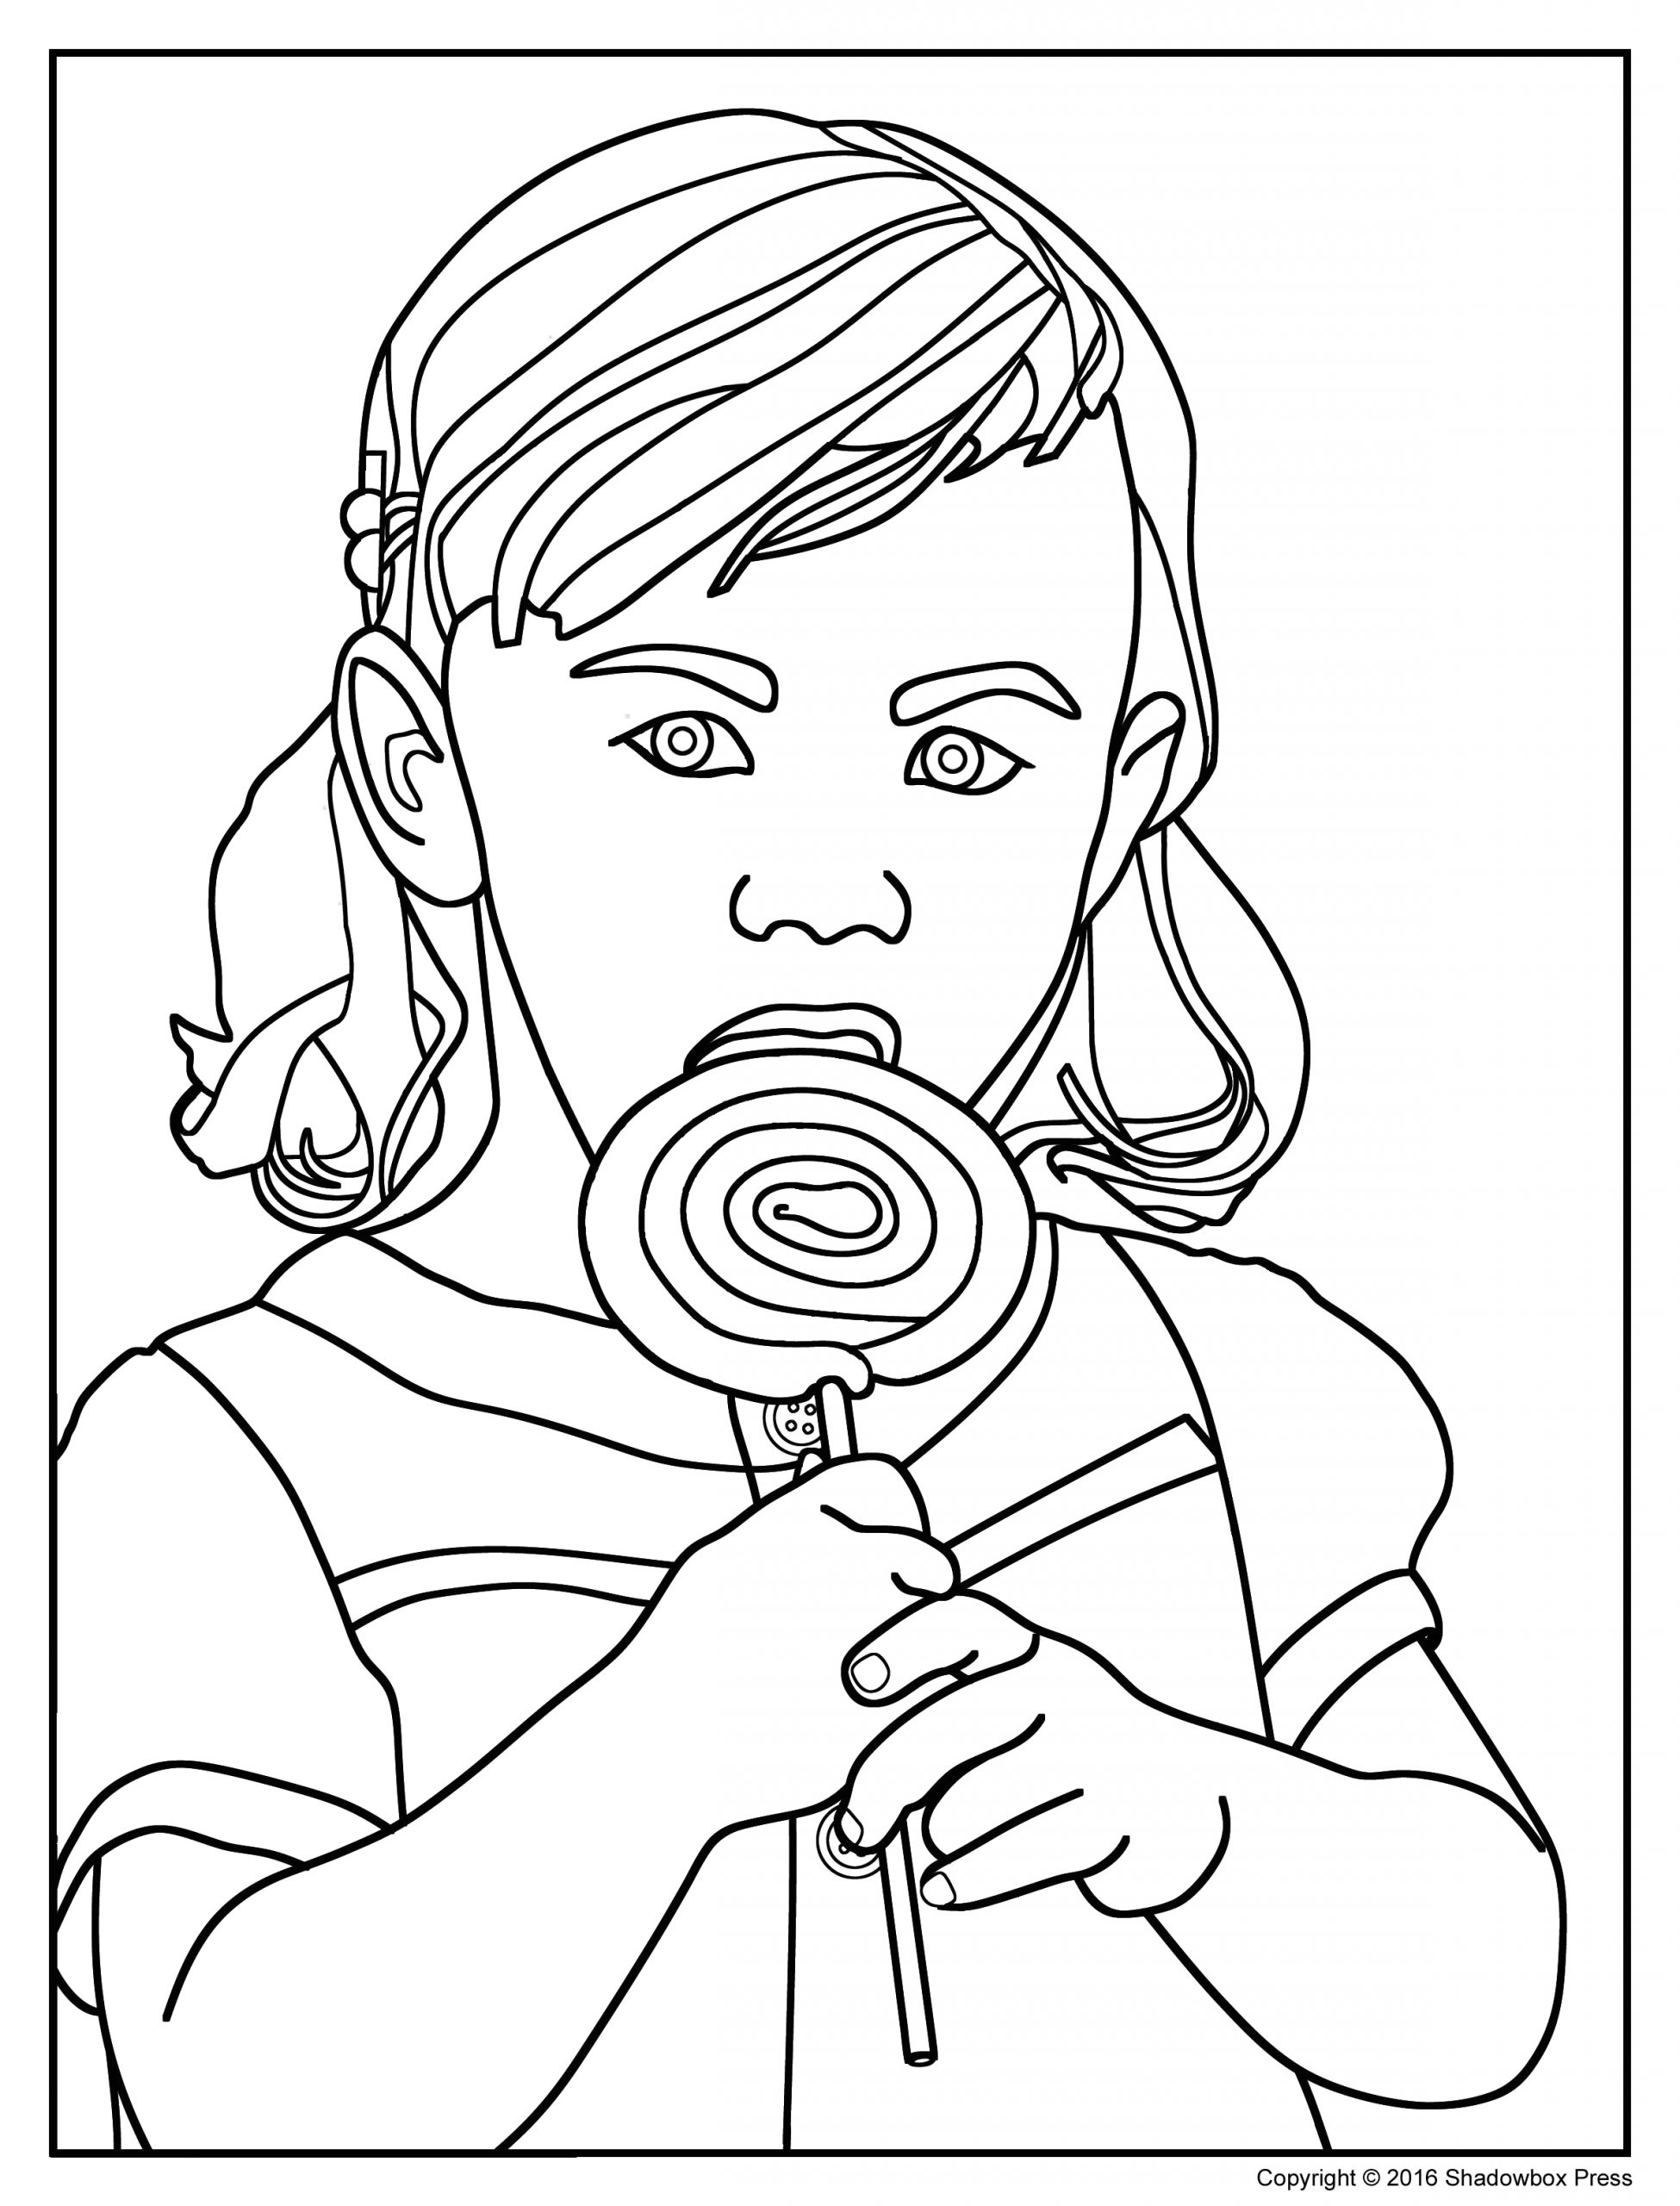 Free Printable Coloring Pages for Dementia Patients Coloring Pages for Dementia Patients Download